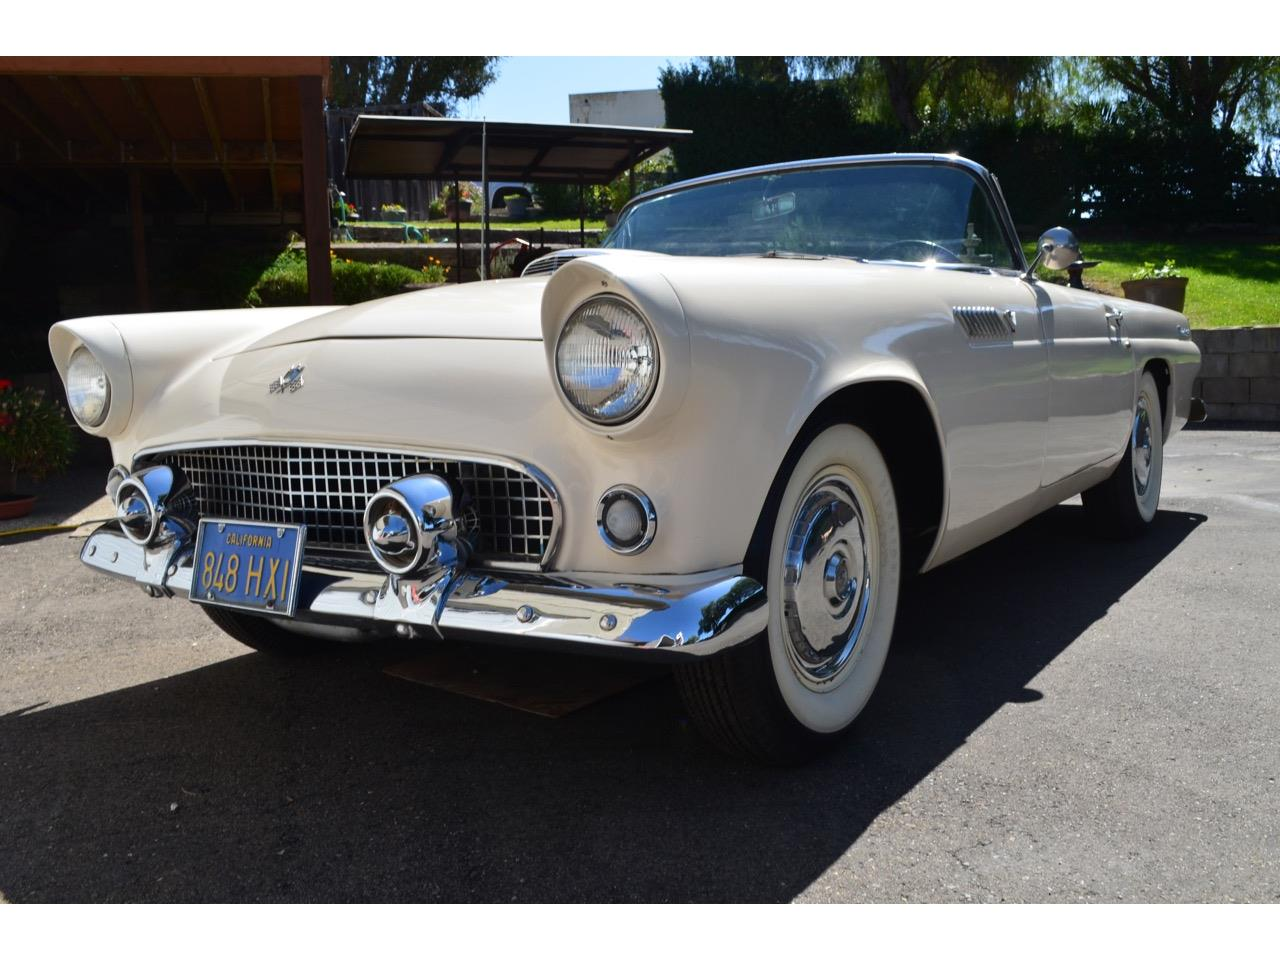 Large Picture of '55 Ford Thunderbird located in California - $22,500.00 - ND2Z